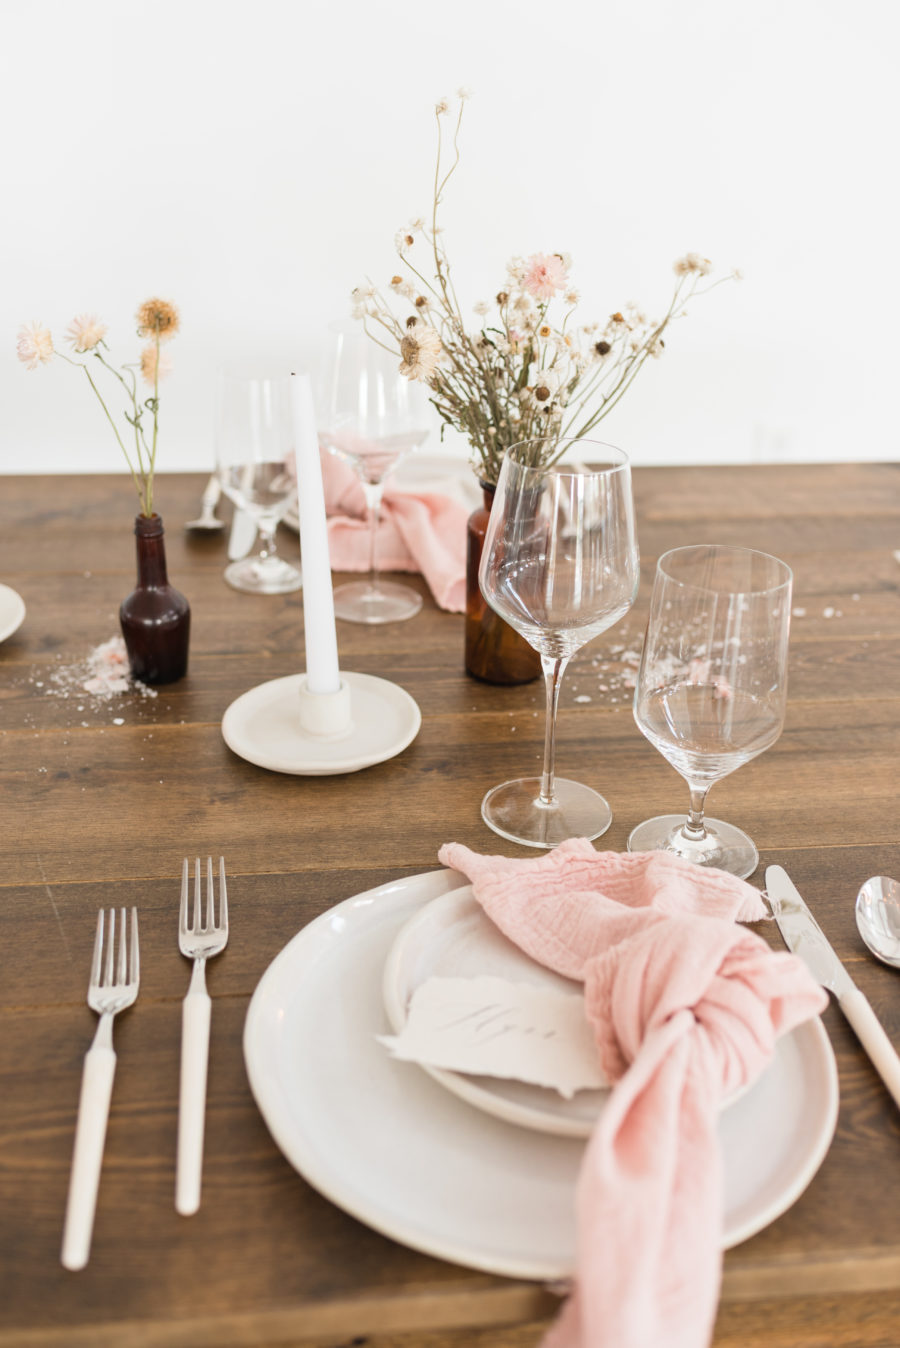 Wedding Table Decor: Organic Eco-Friendly Wedding Styled Shoot featured on Nashville Bride Guide